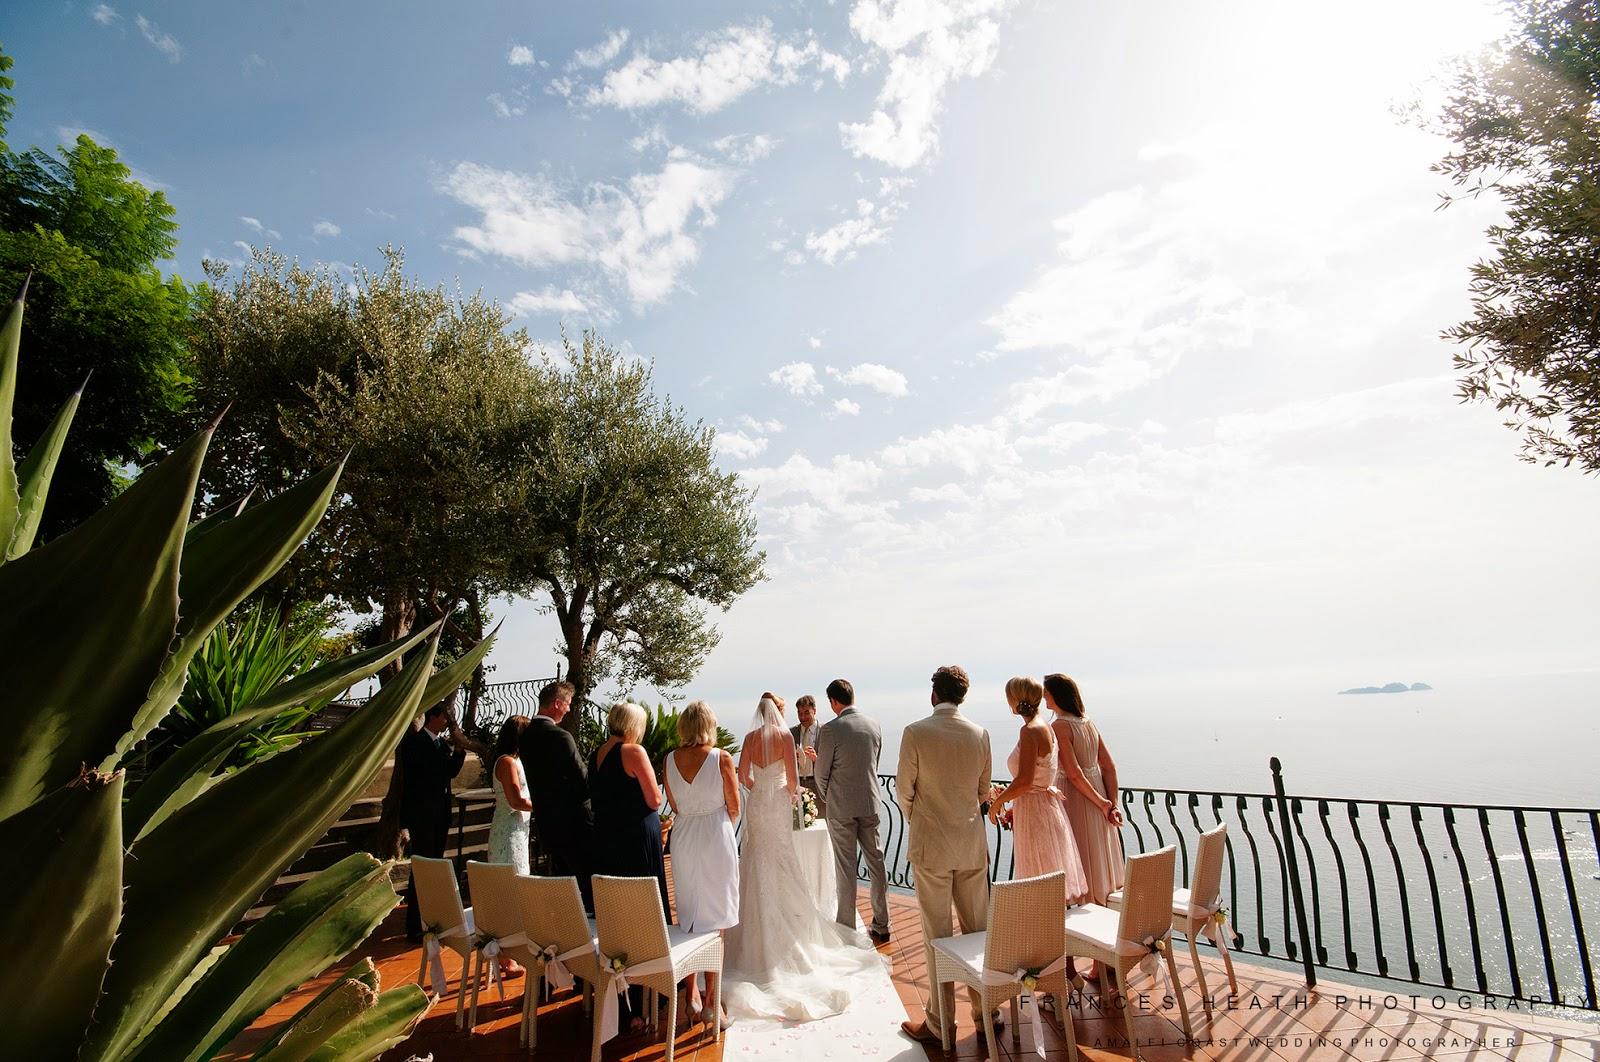 Wedding ceremony at Villa Oliviero in Positano